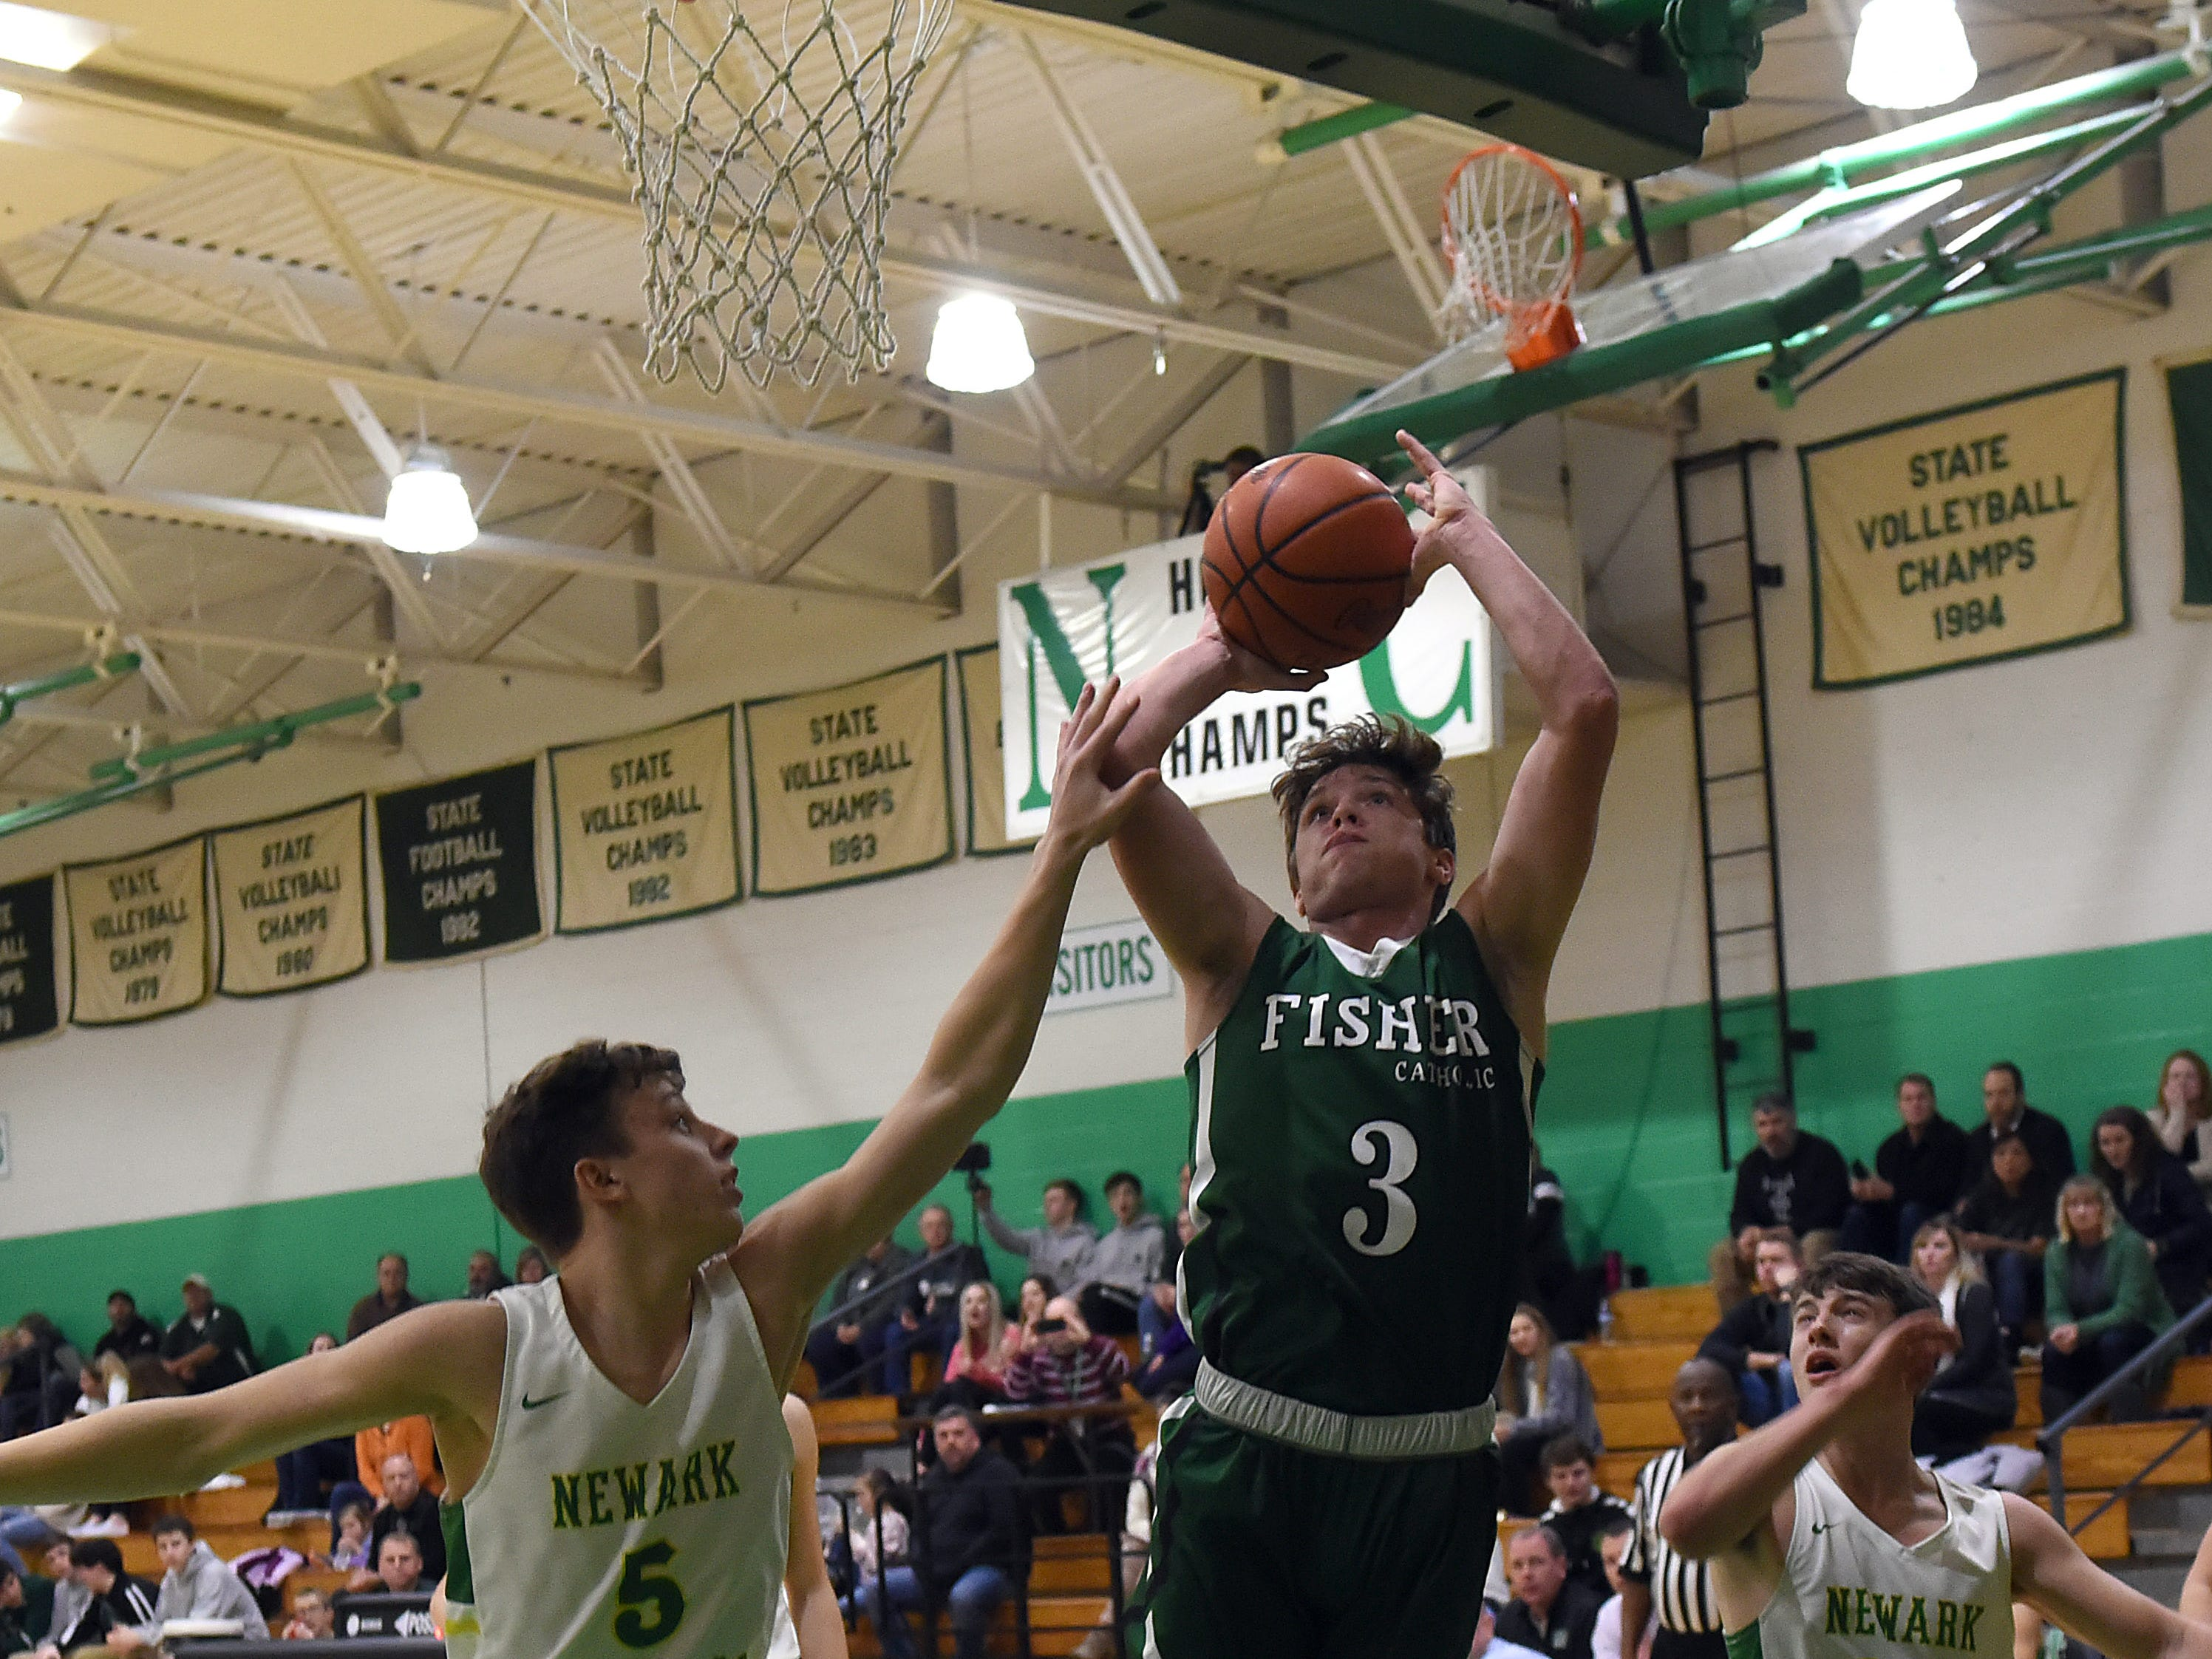 Newark Catholic senior Ian Stacey tries to block a shot from Fisher Catholic senior Collin McCrady during Monday night's game at Newark Catholic. The Irish won with a buzzer-beating 3-pointer defeating the Green Wave 52-49.